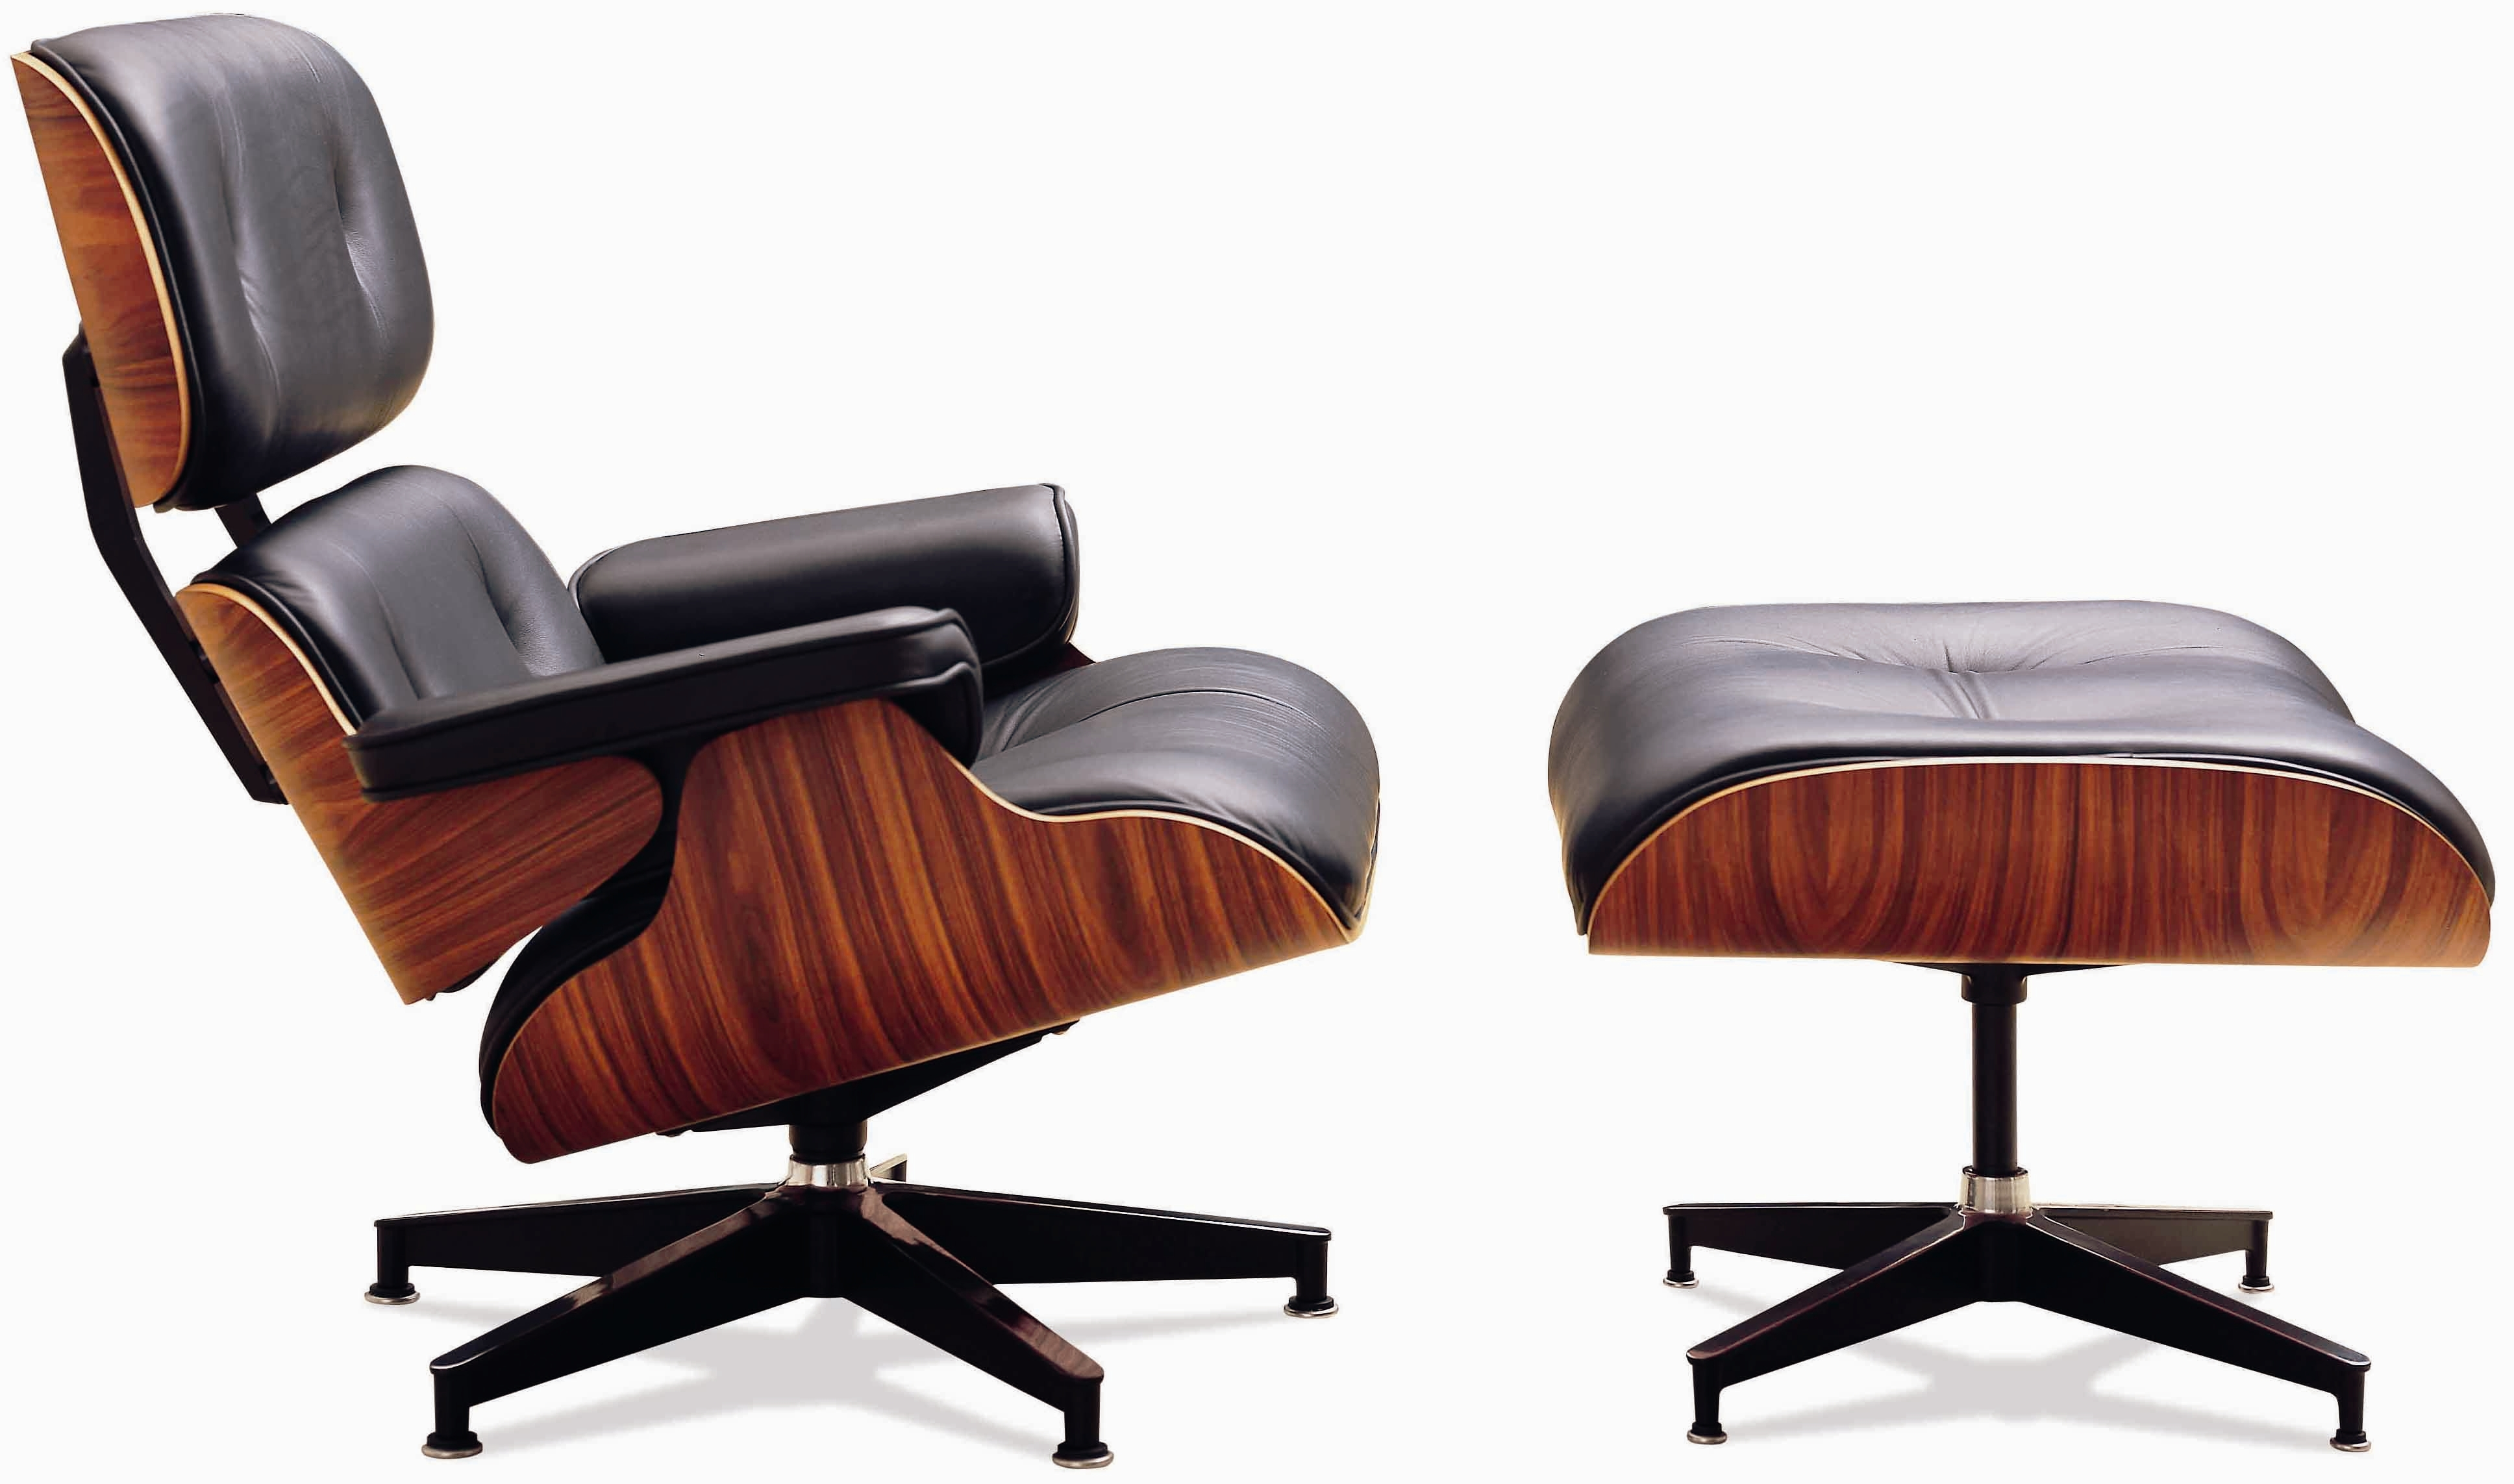 Atomic furniture mid century retro cool design craze for Eames lounge sessel nachbau